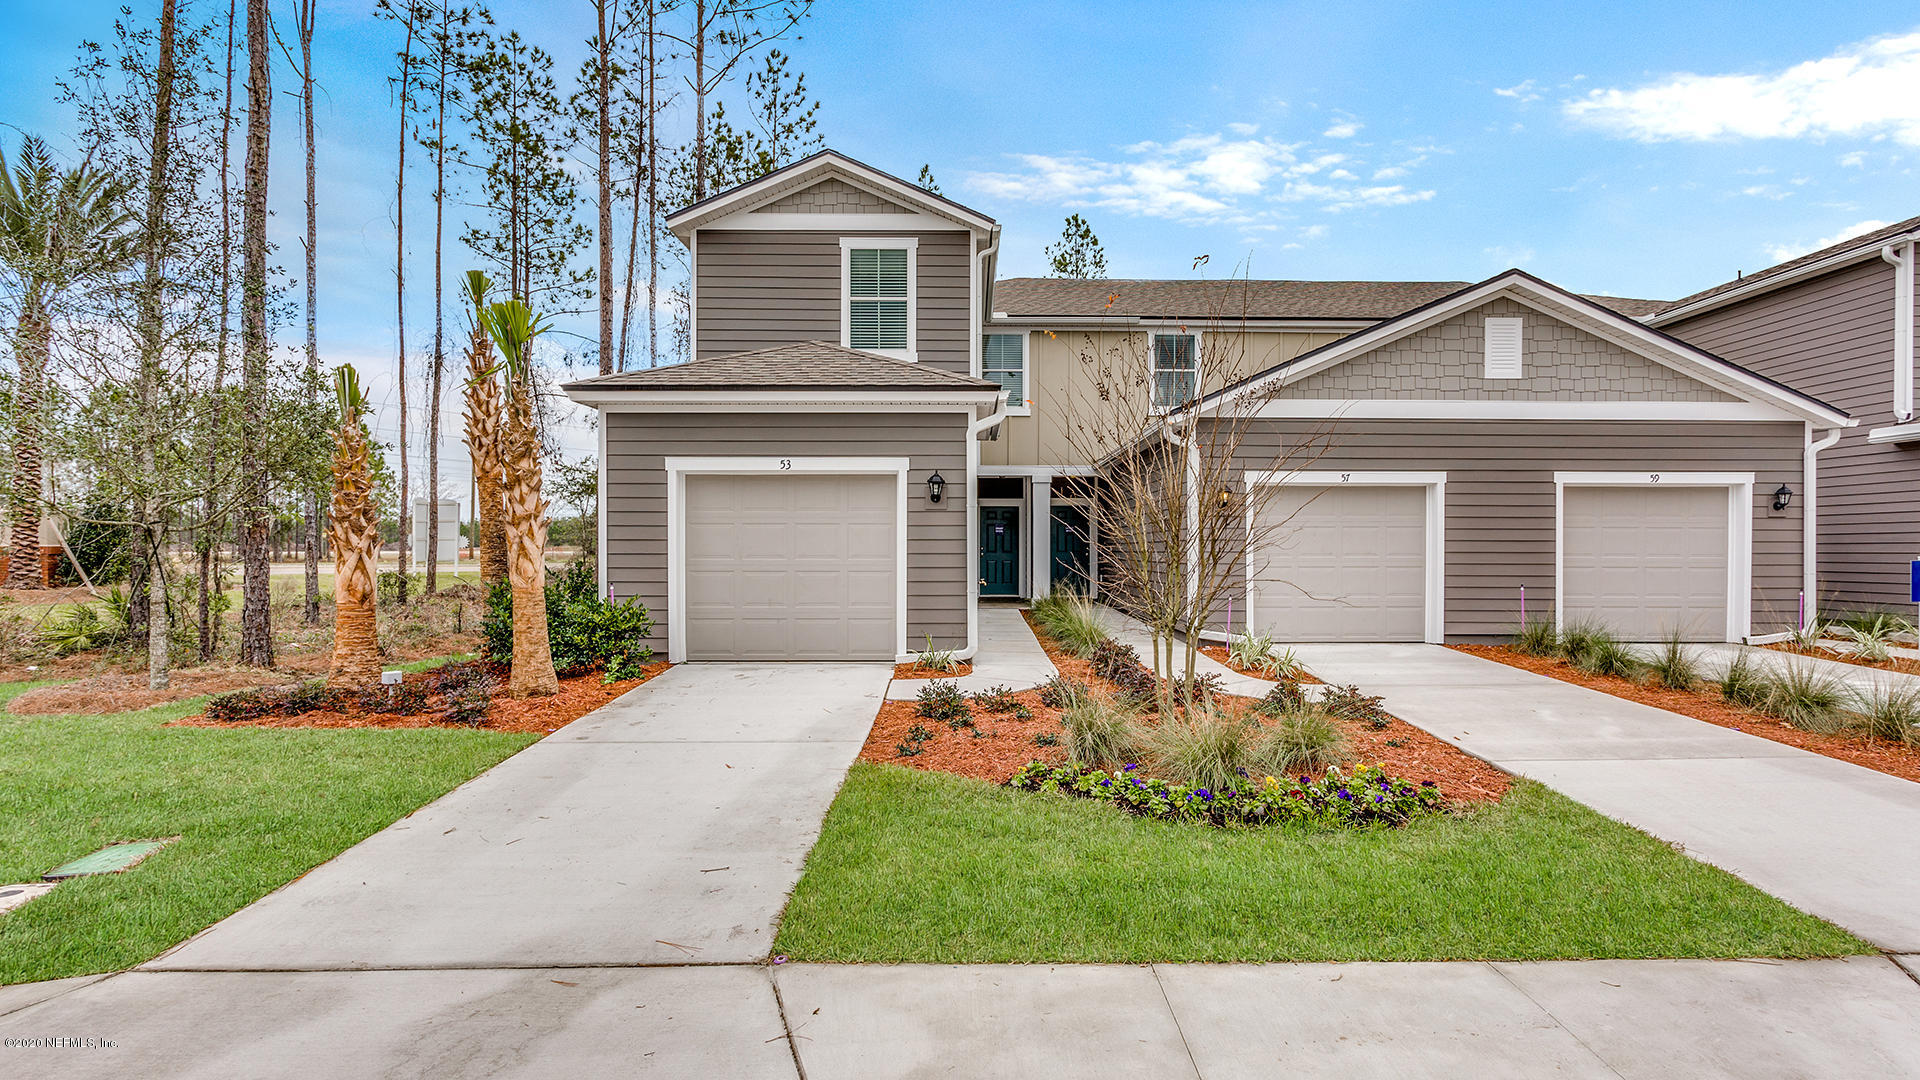 57 SCOTCH PEBBLE, ST JOHNS, FLORIDA 32259, 3 Bedrooms Bedrooms, ,2 BathroomsBathrooms,Residential,For sale,SCOTCH PEBBLE,1080996